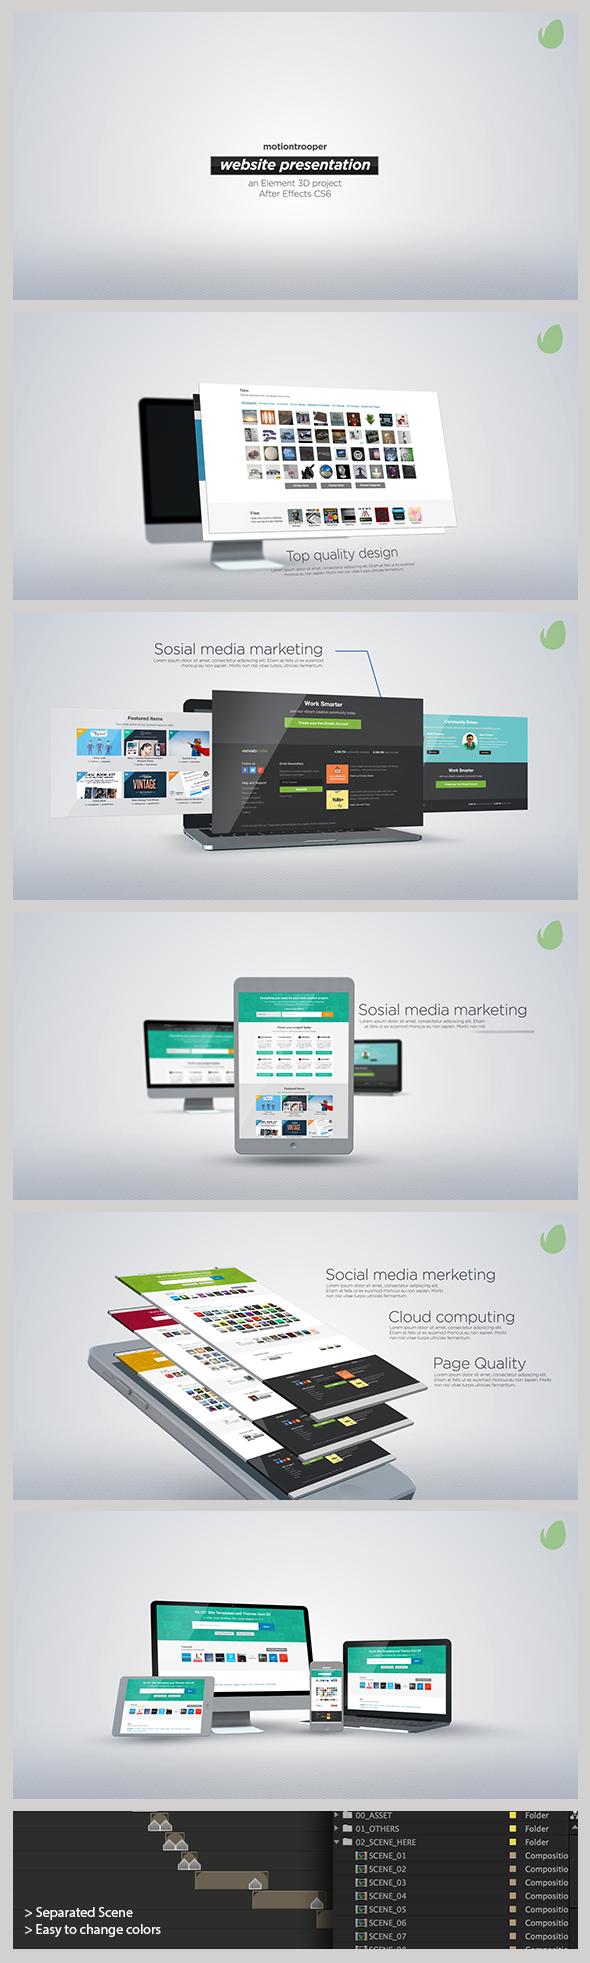 website presentation by motiontrooper videohive